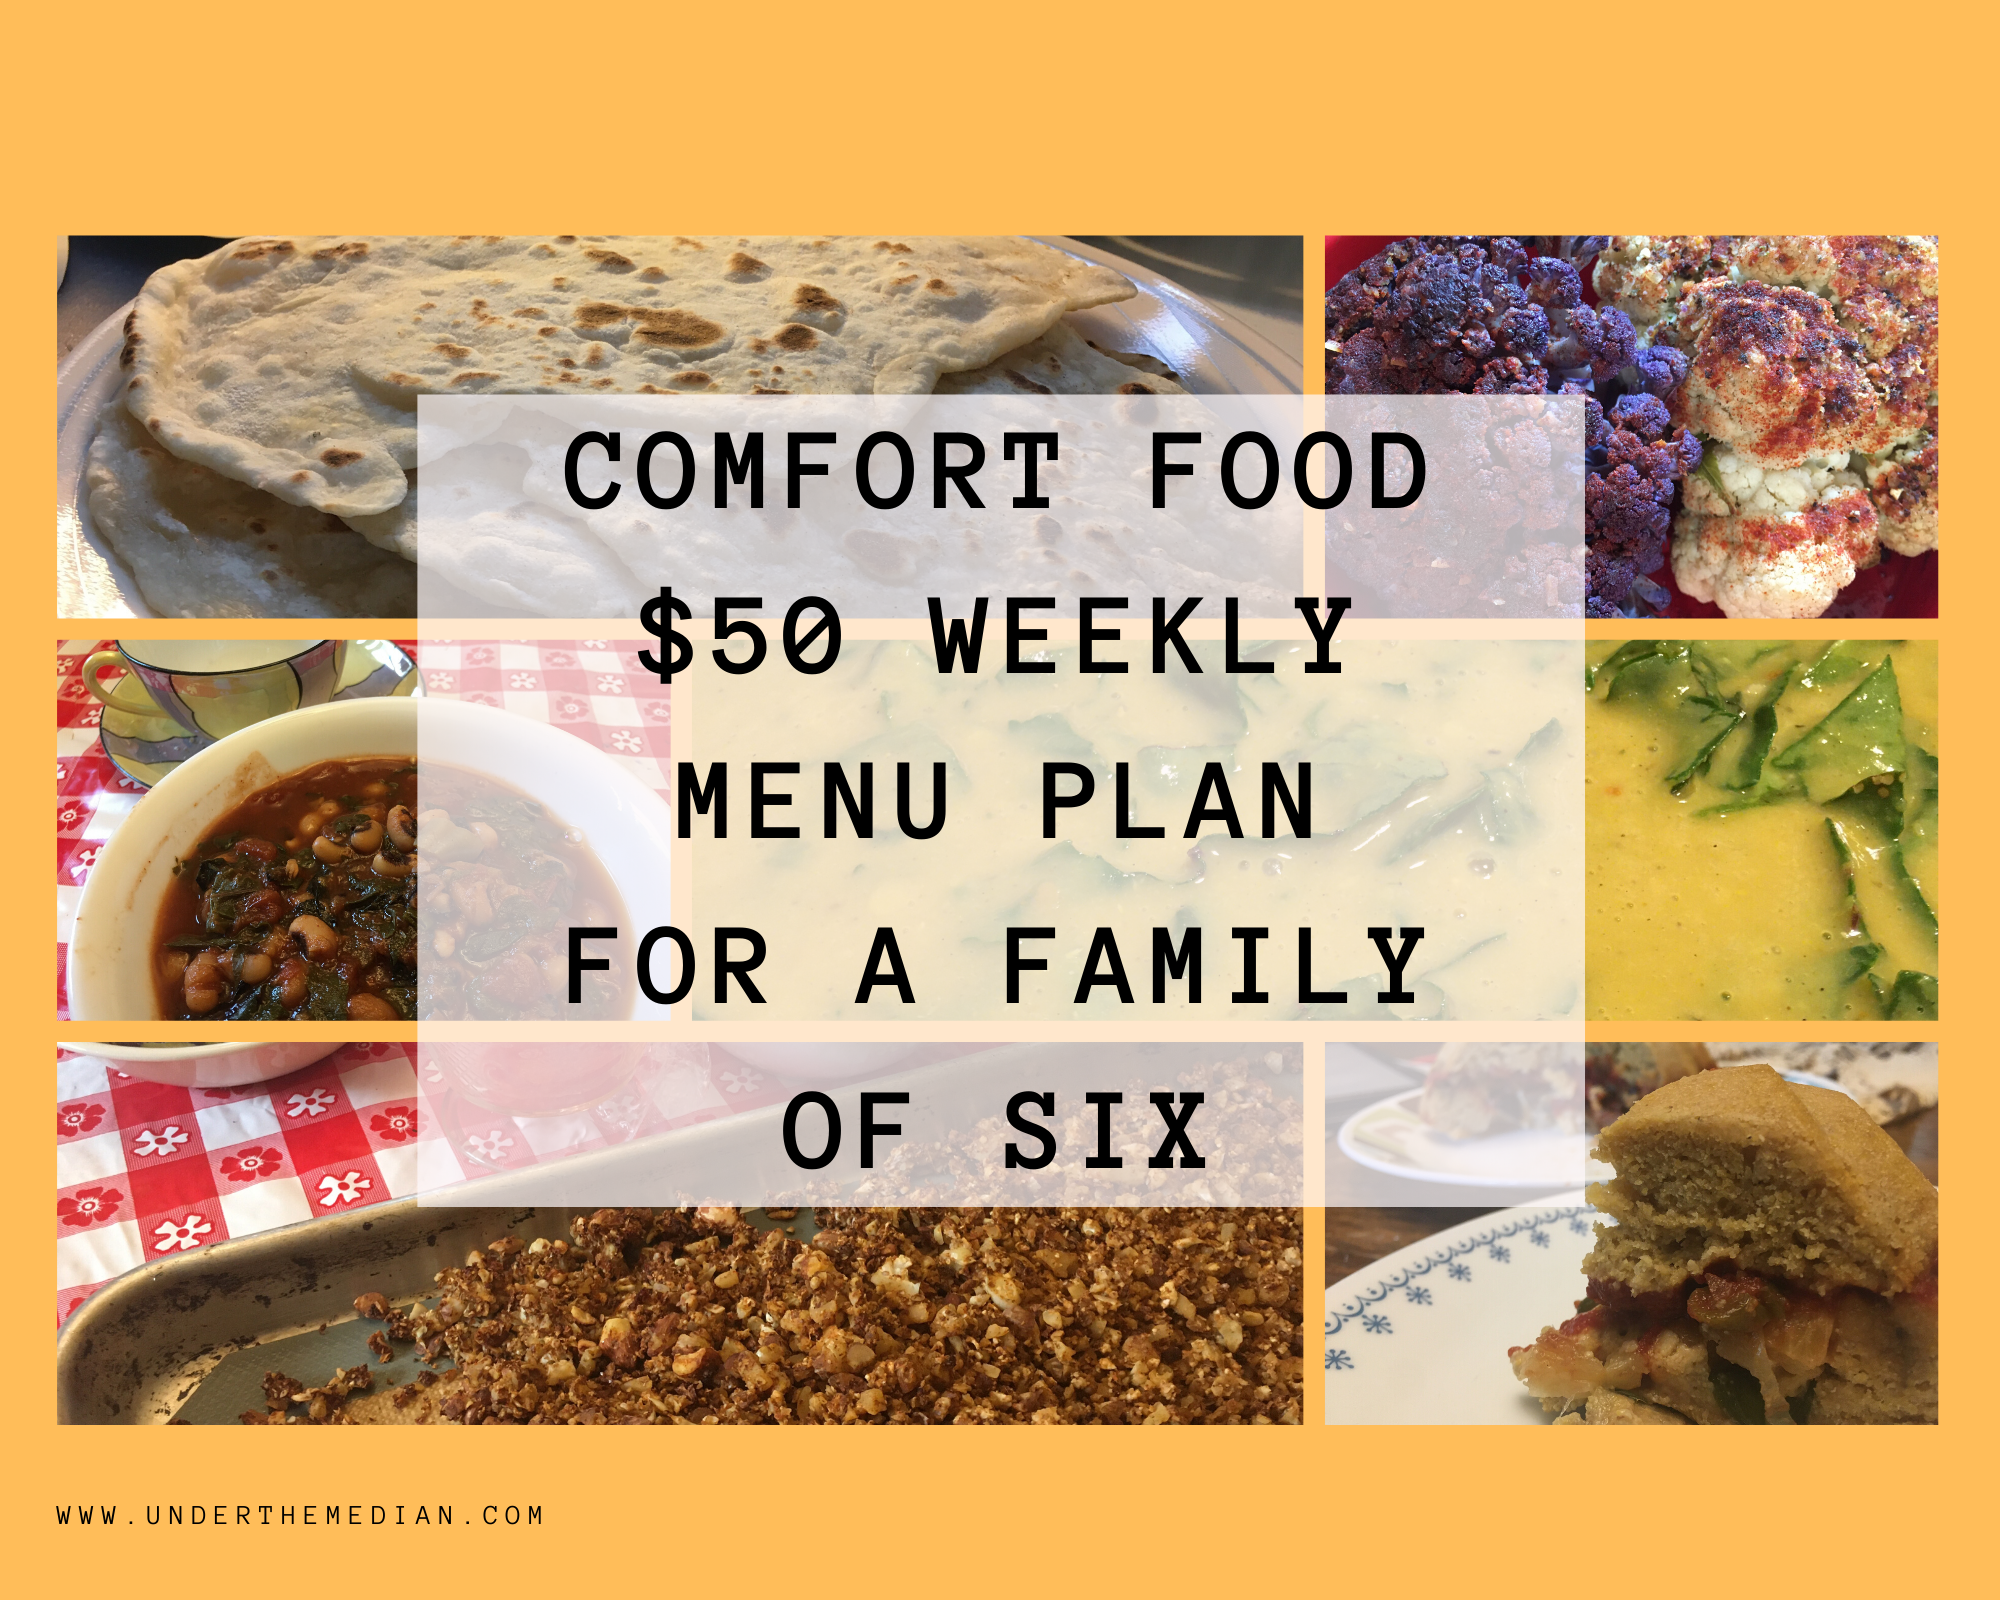 Comfort Food $50 Weekly Menu Plan for a Family of 6